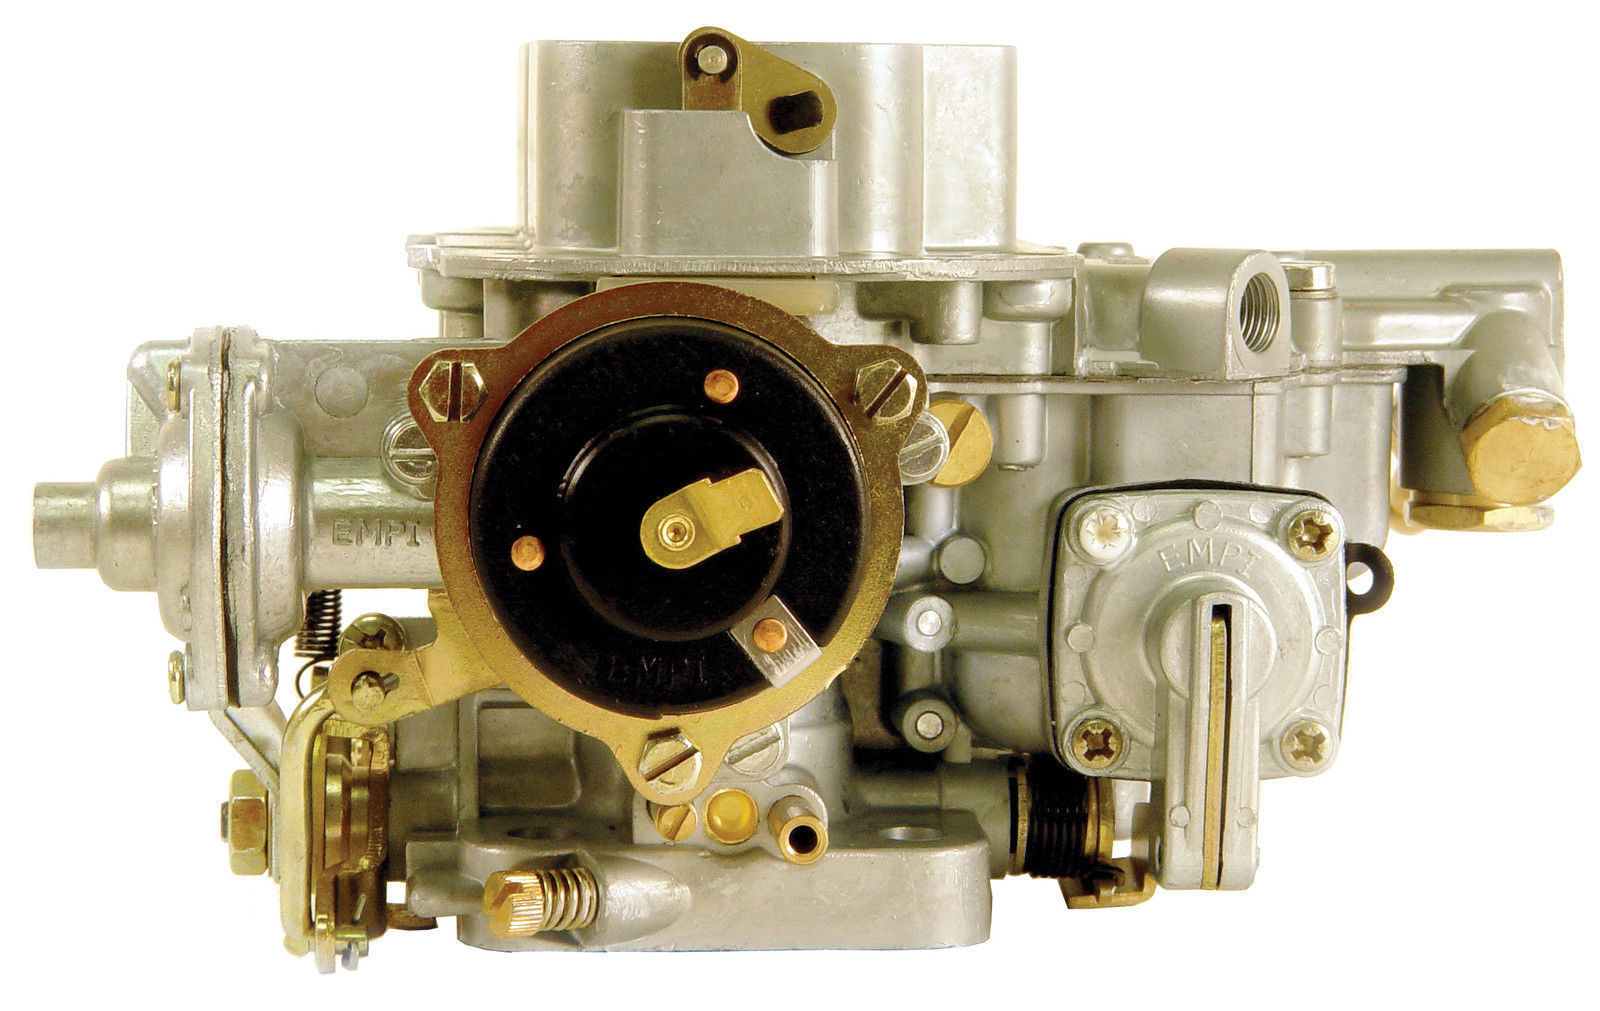 Holley 0 76750bk carburetor double what is forward voltage pvc wiring 1976 dodge electric choke yamaha champ wiring diagram e47 1612 0 empi 32 36f carb pooptronica Image collections